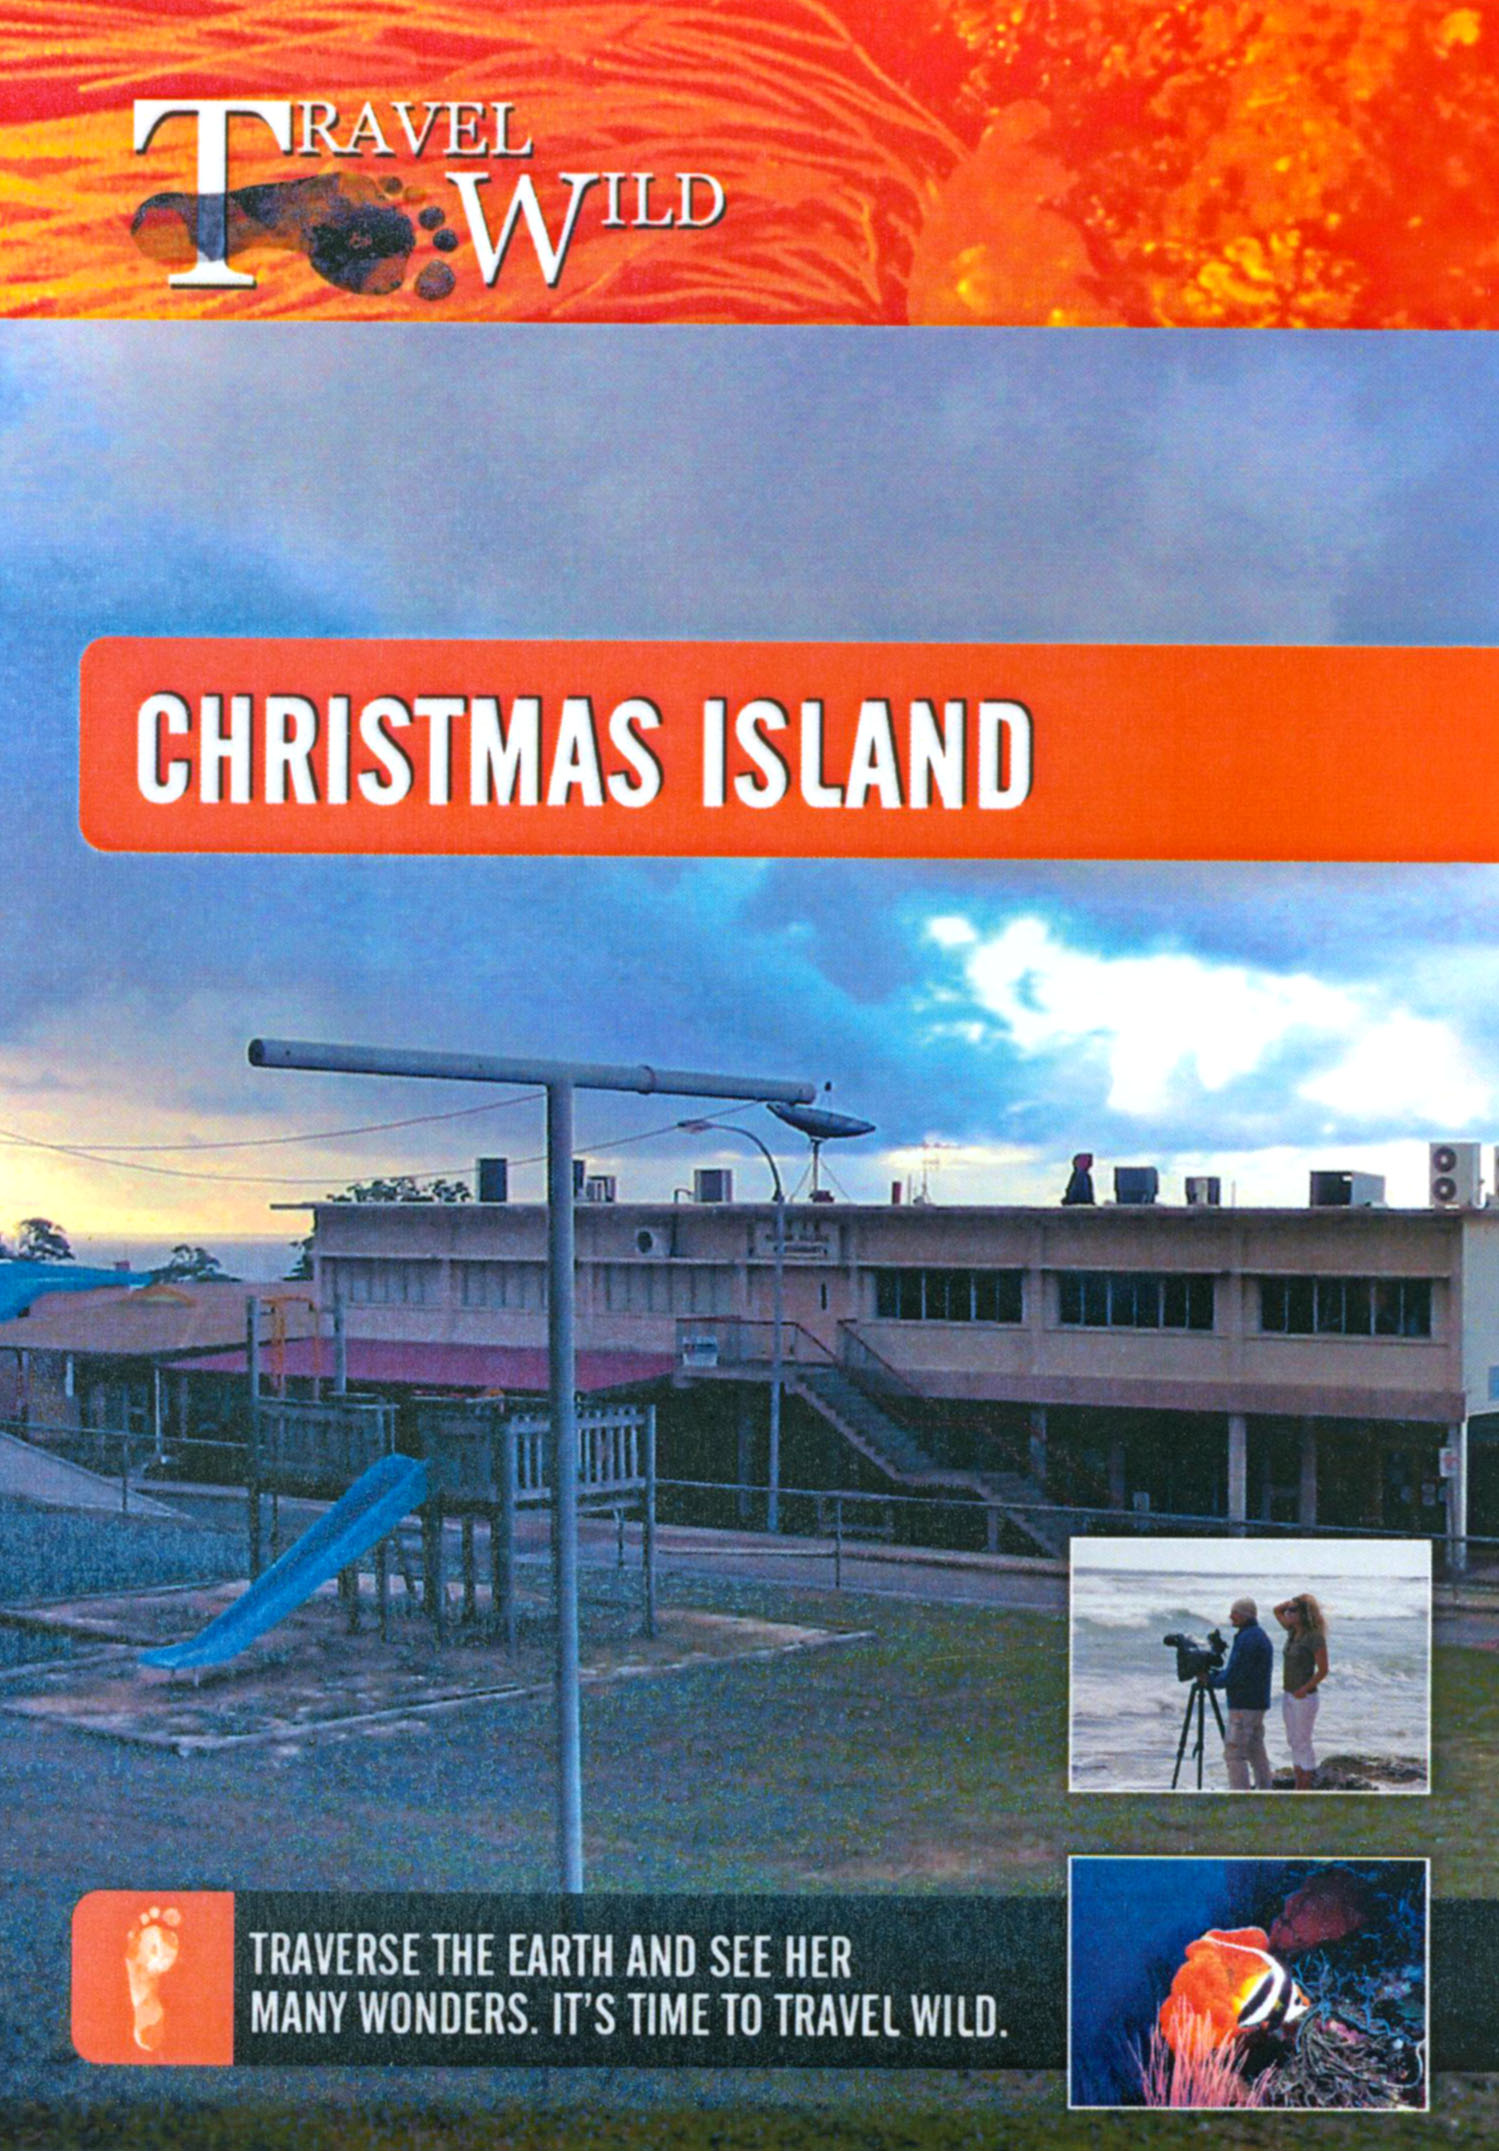 Travel Wild: Christmas Island